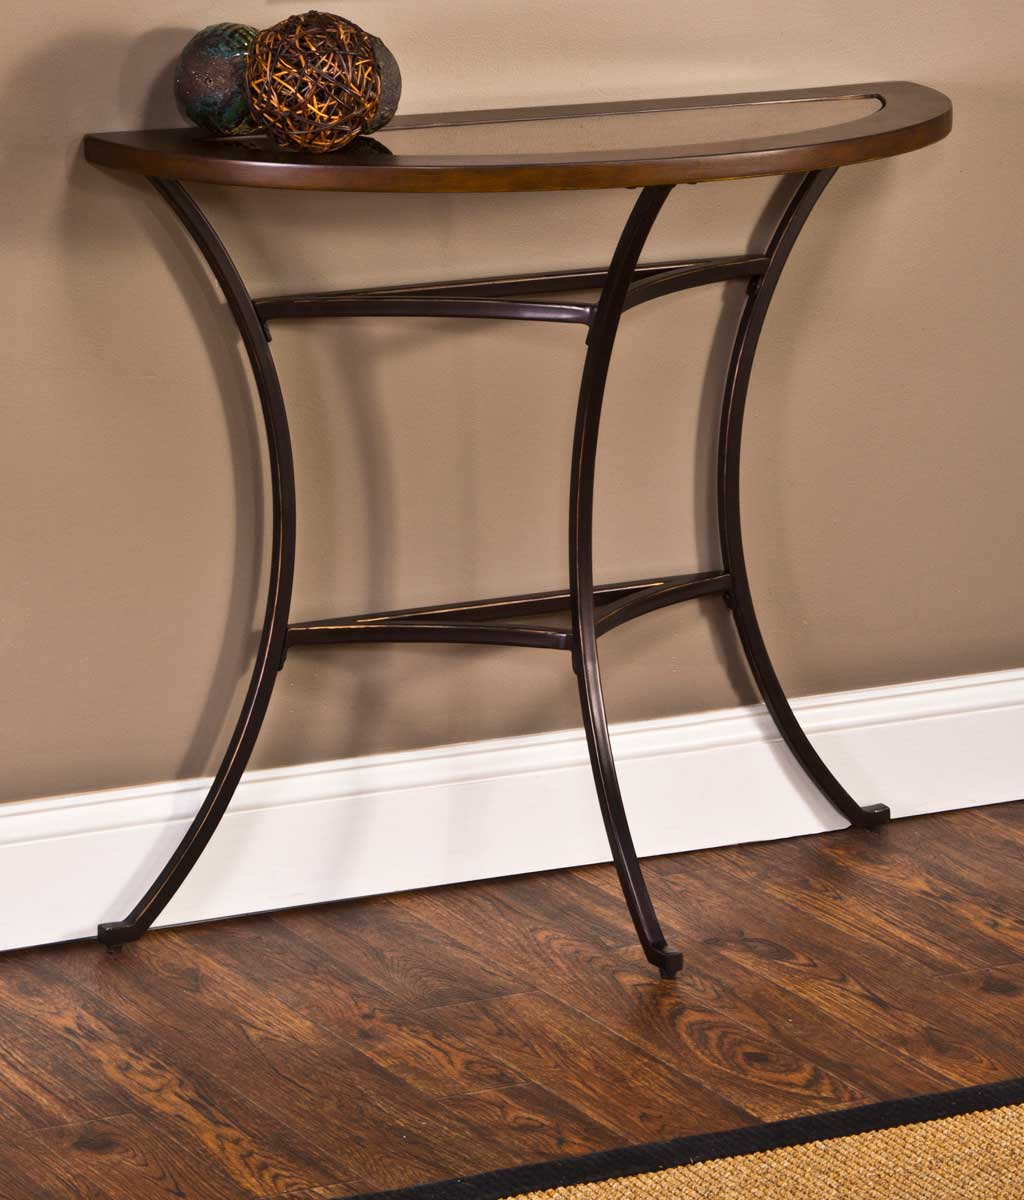 Hillsdale Montclair Console Table   Wood Border With Mirrored Glass Top/  Metal   Copper Gold